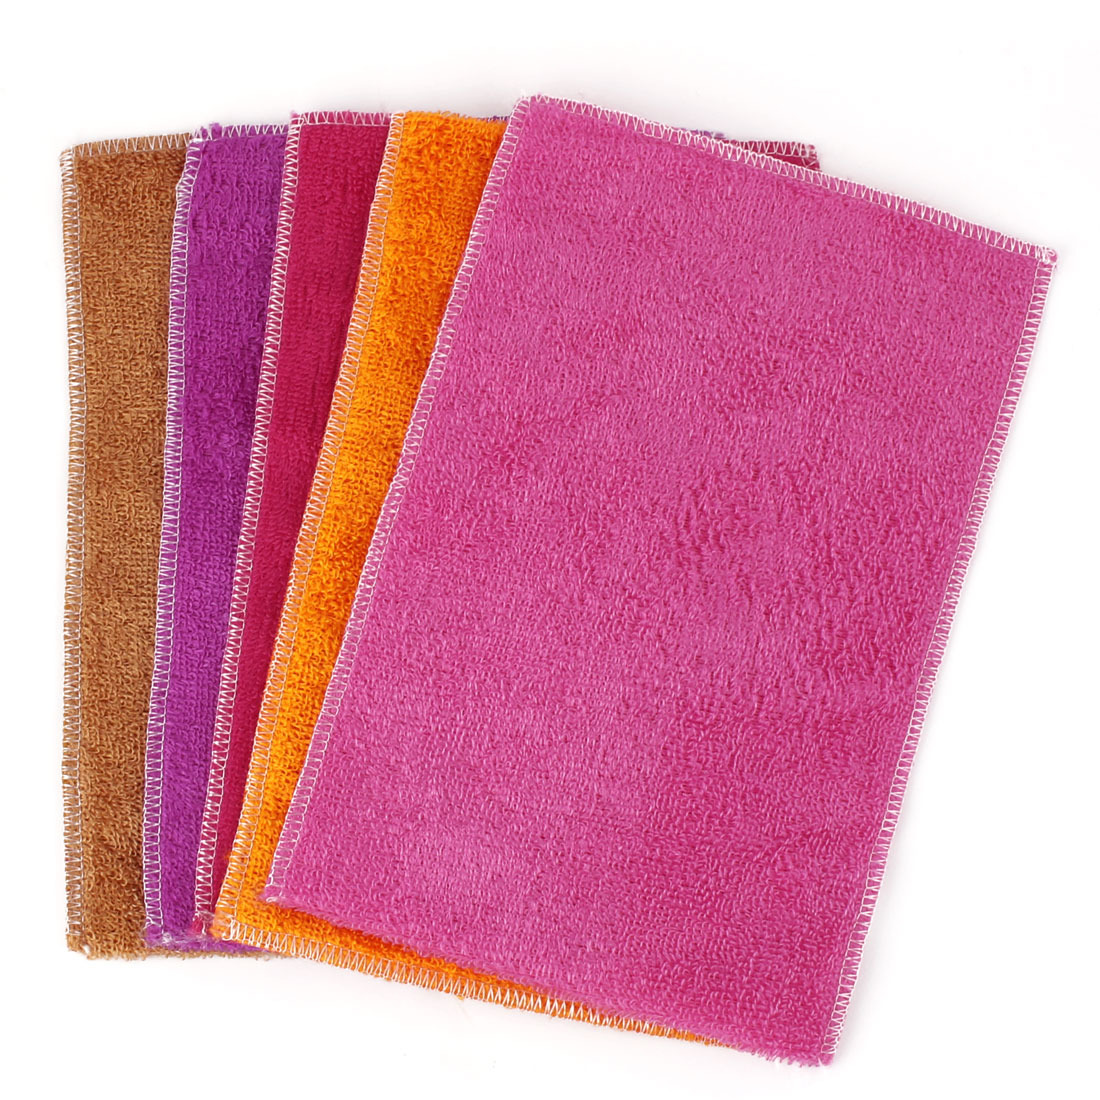 Household Kitchen Fiber Dish Washing Towels Assorted Color 30cm x 20cm 5 Pcs